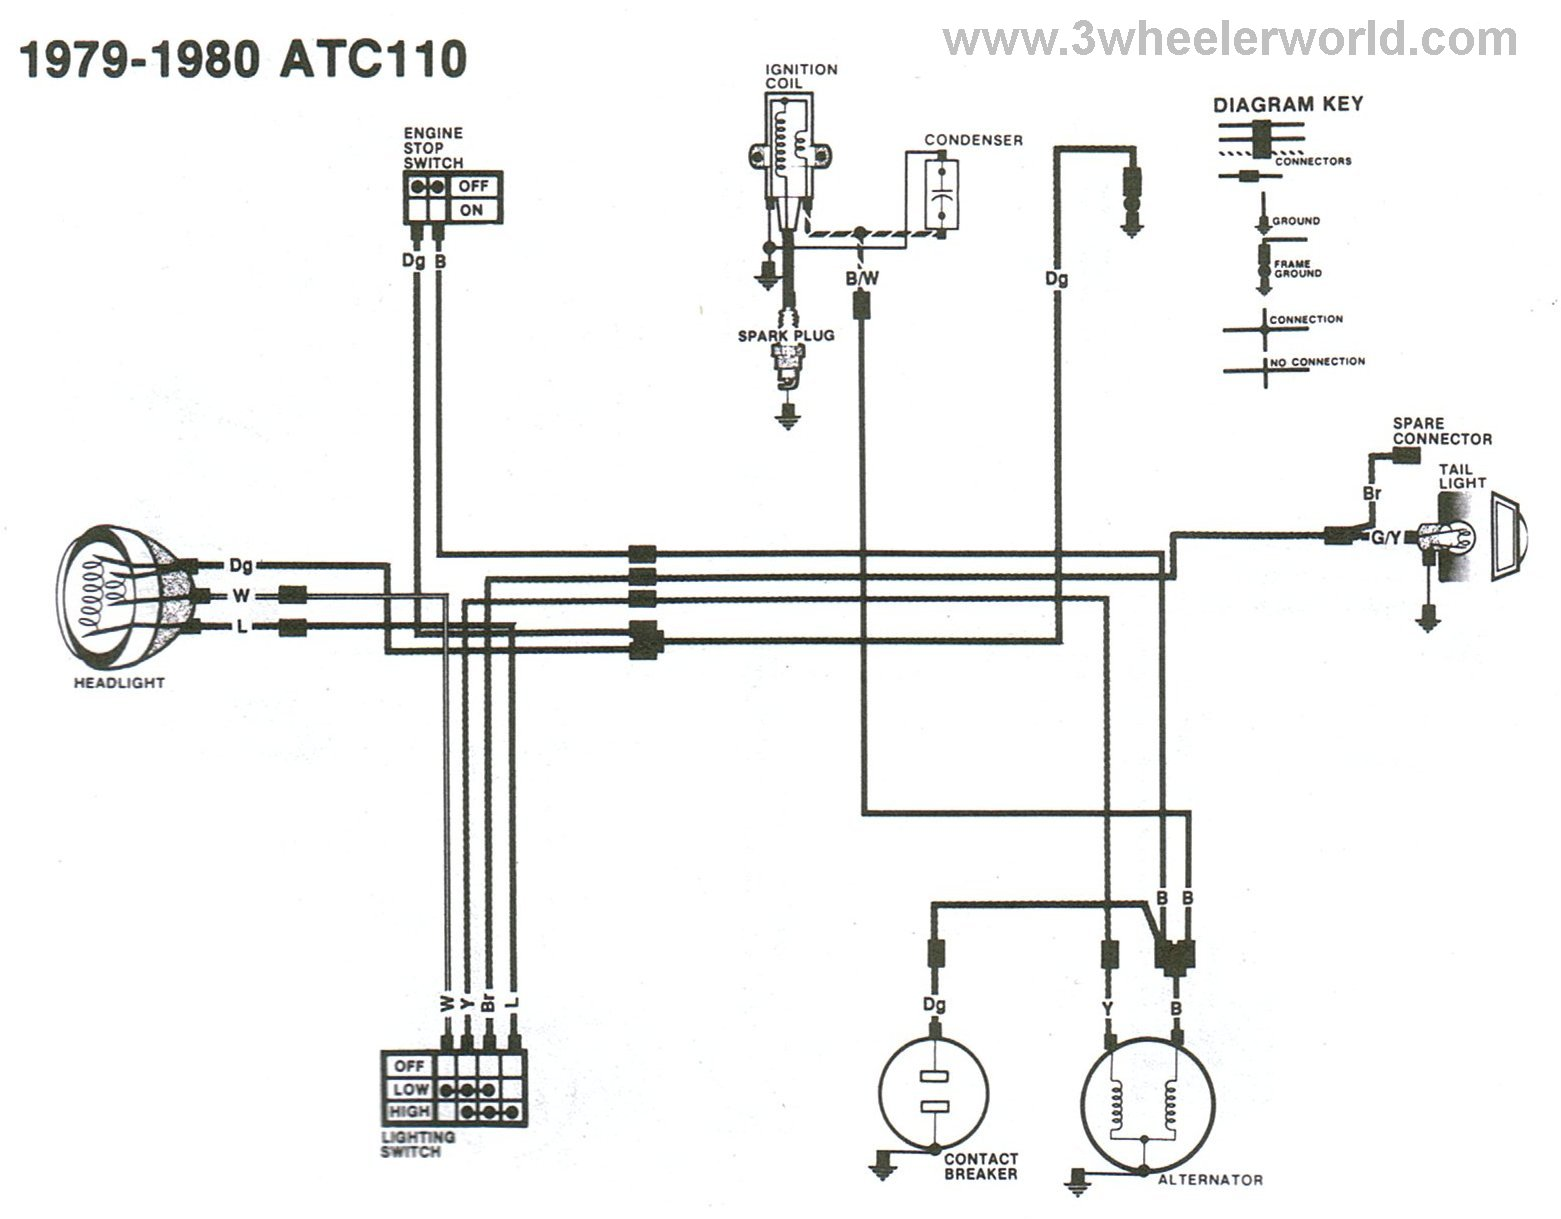 ATC110x79Thru80 3 wheeler world tech help honda wiring diagrams Wiring Harness Diagram at soozxer.org